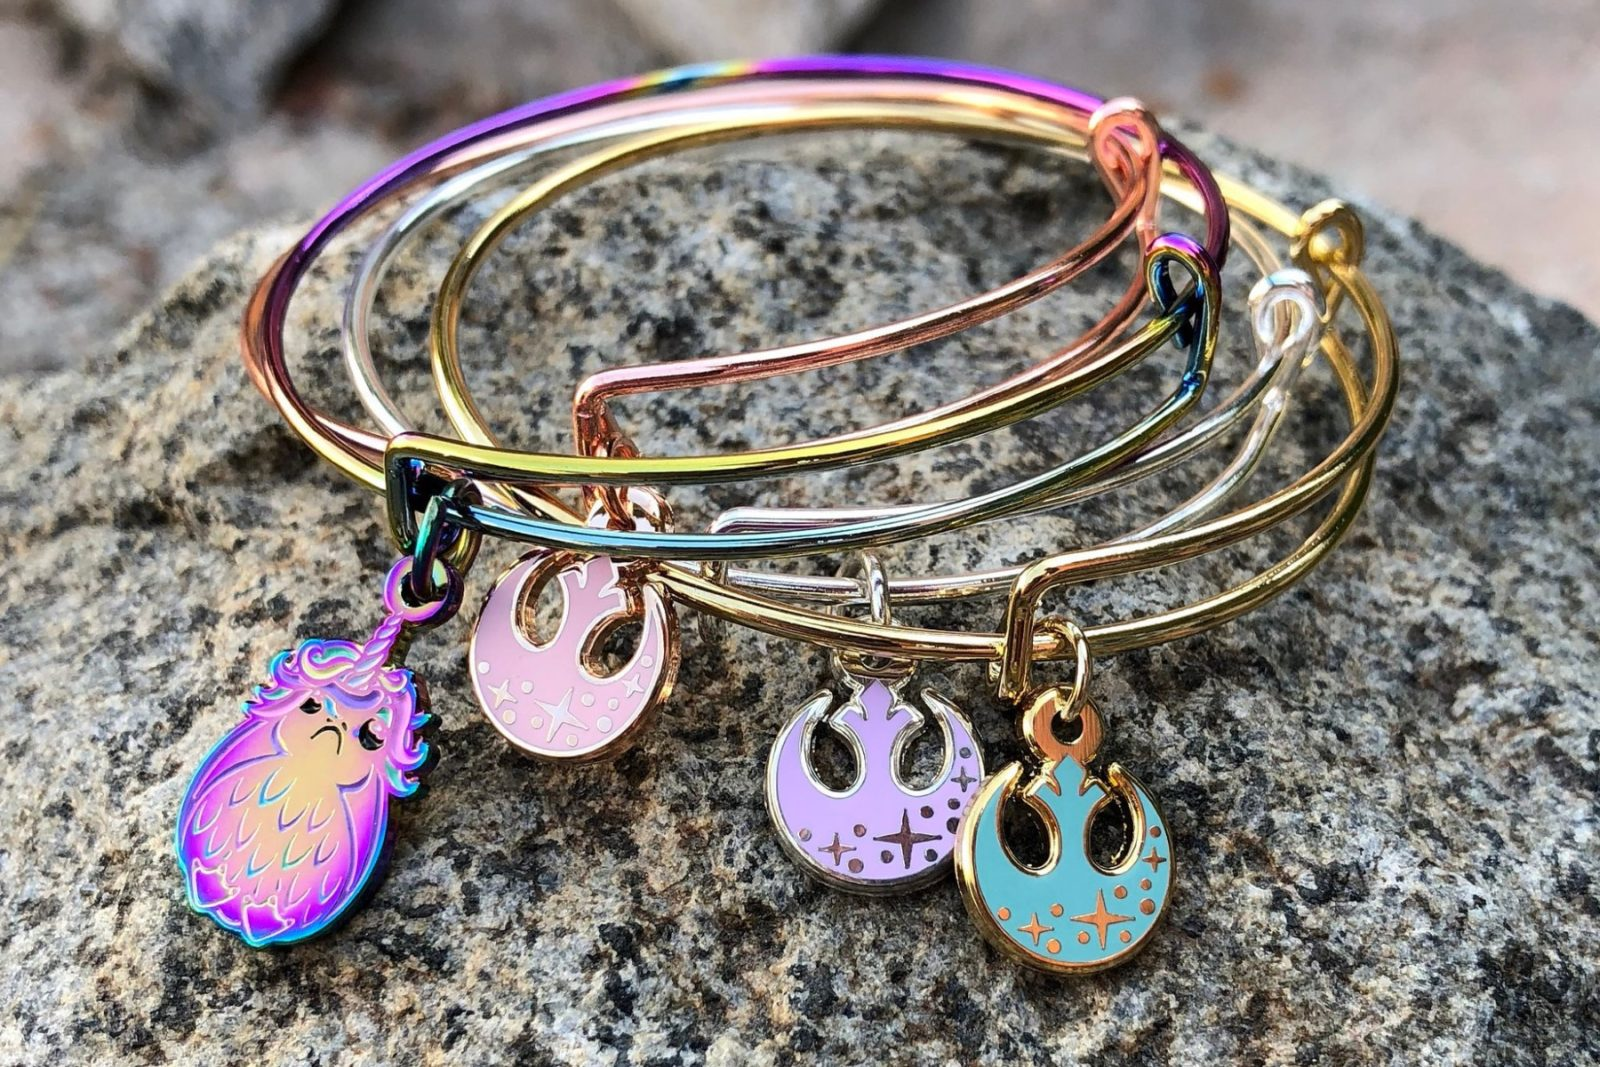 Gorgeous Star Wars Bracelets by Utinni Bikini